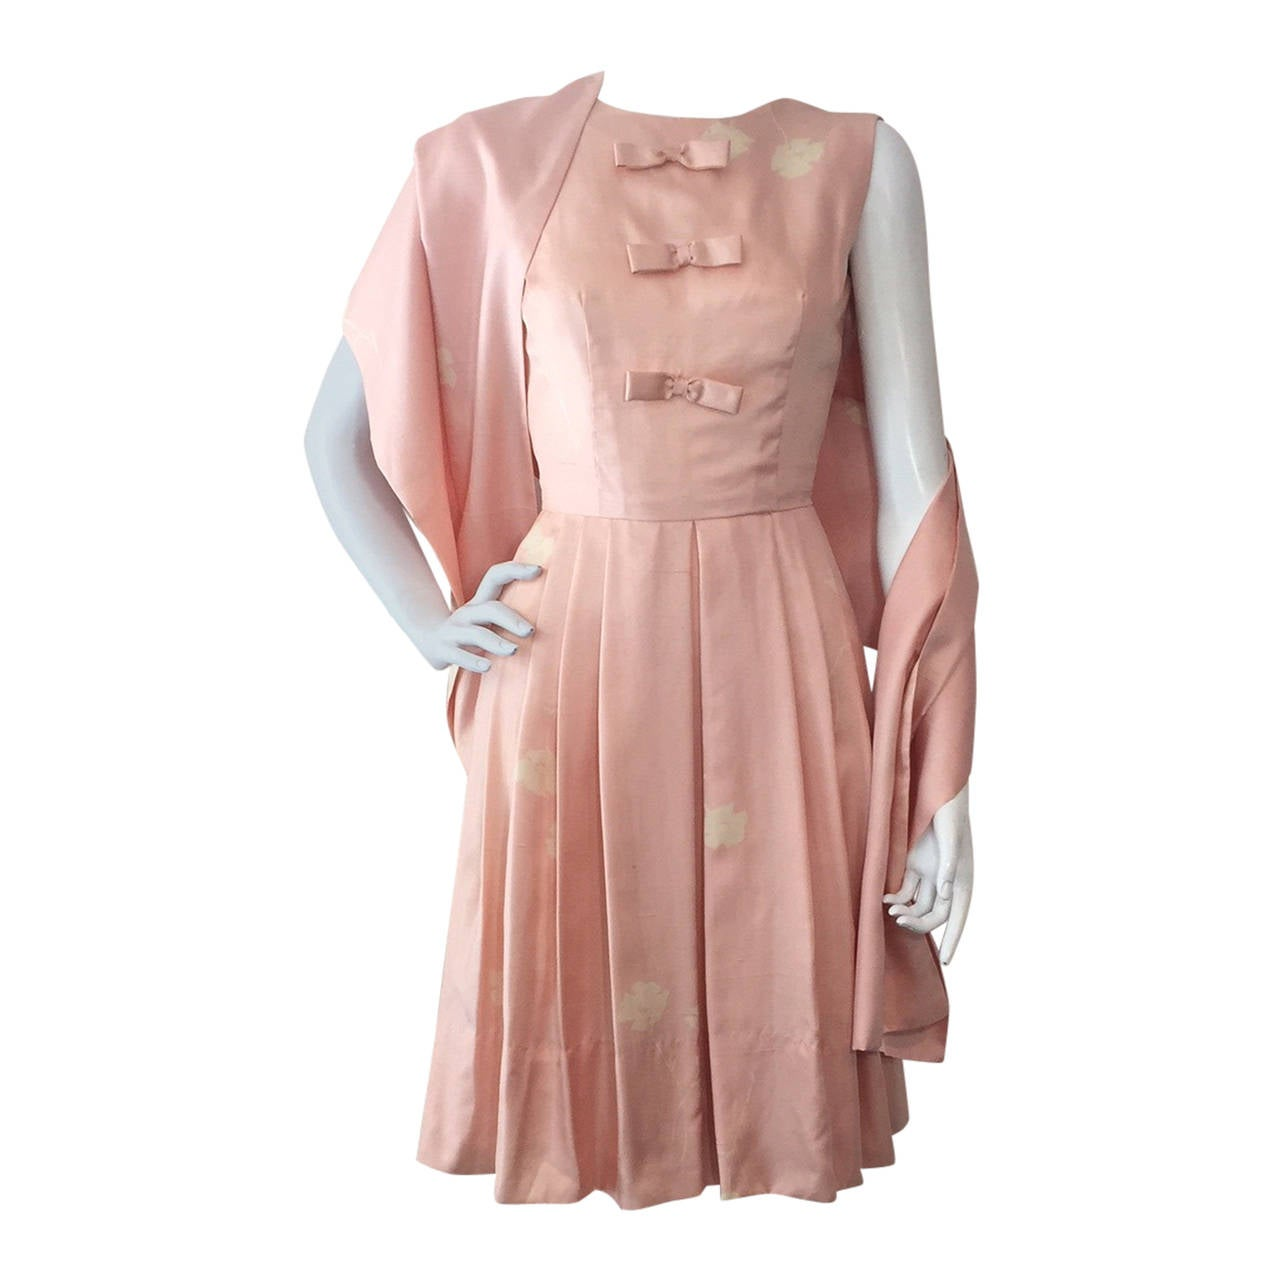 1950s Pink Silk Print Sleeveless Dress w/ Matching Fabric Stole